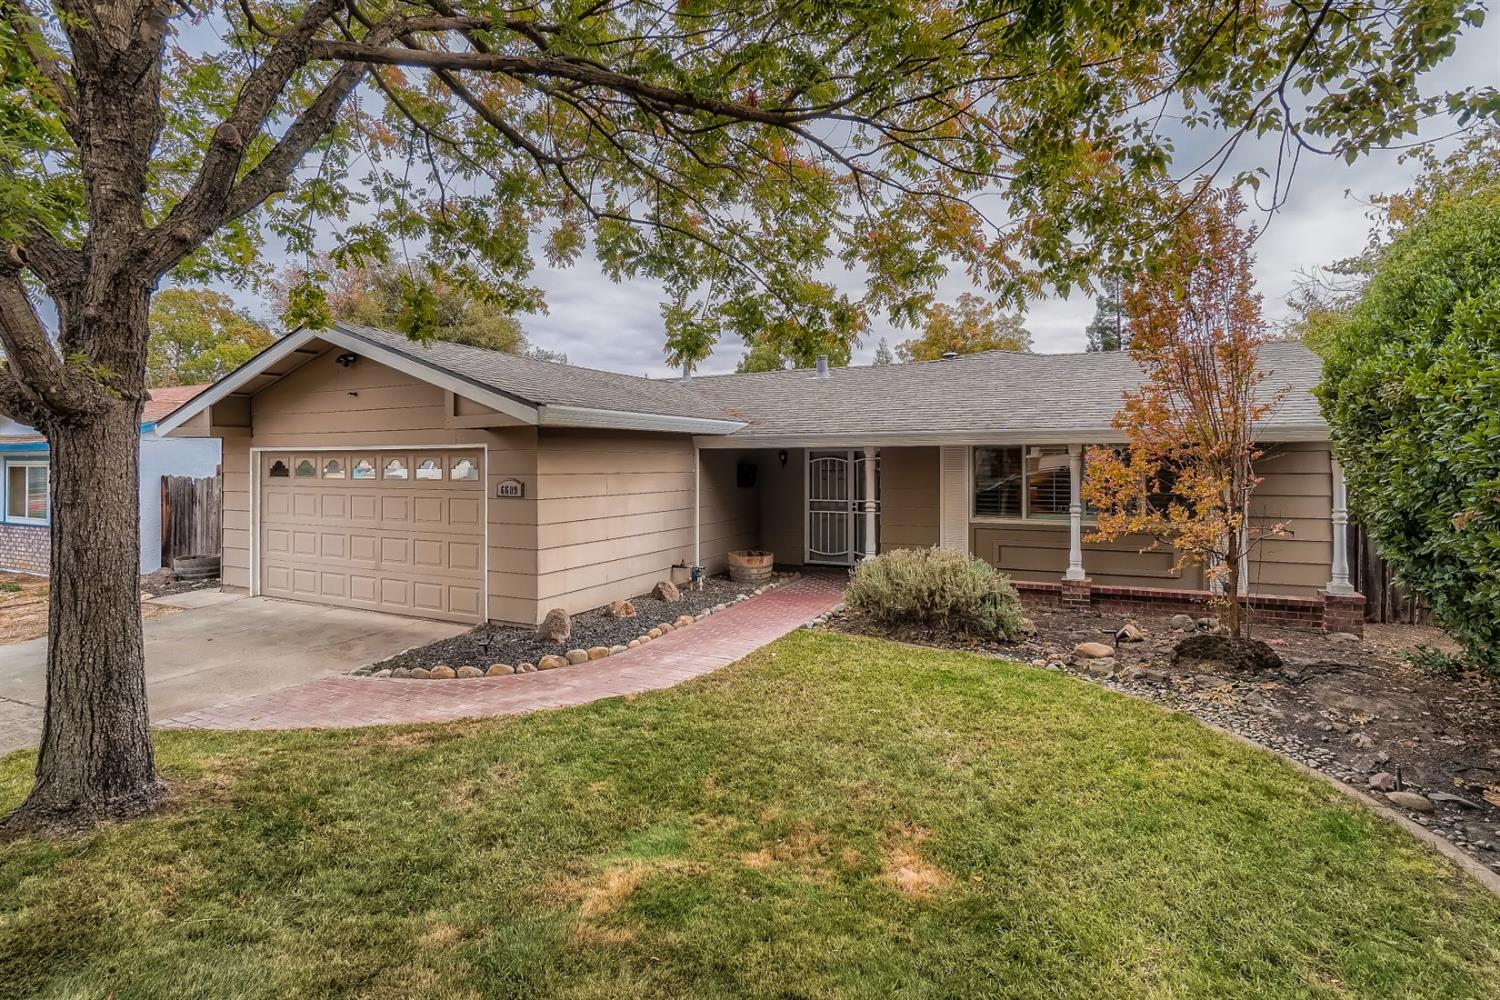 Beautiful 3 bed, 2 bath home with open floor plan in Citrus Heights area. Centrally located on a lar